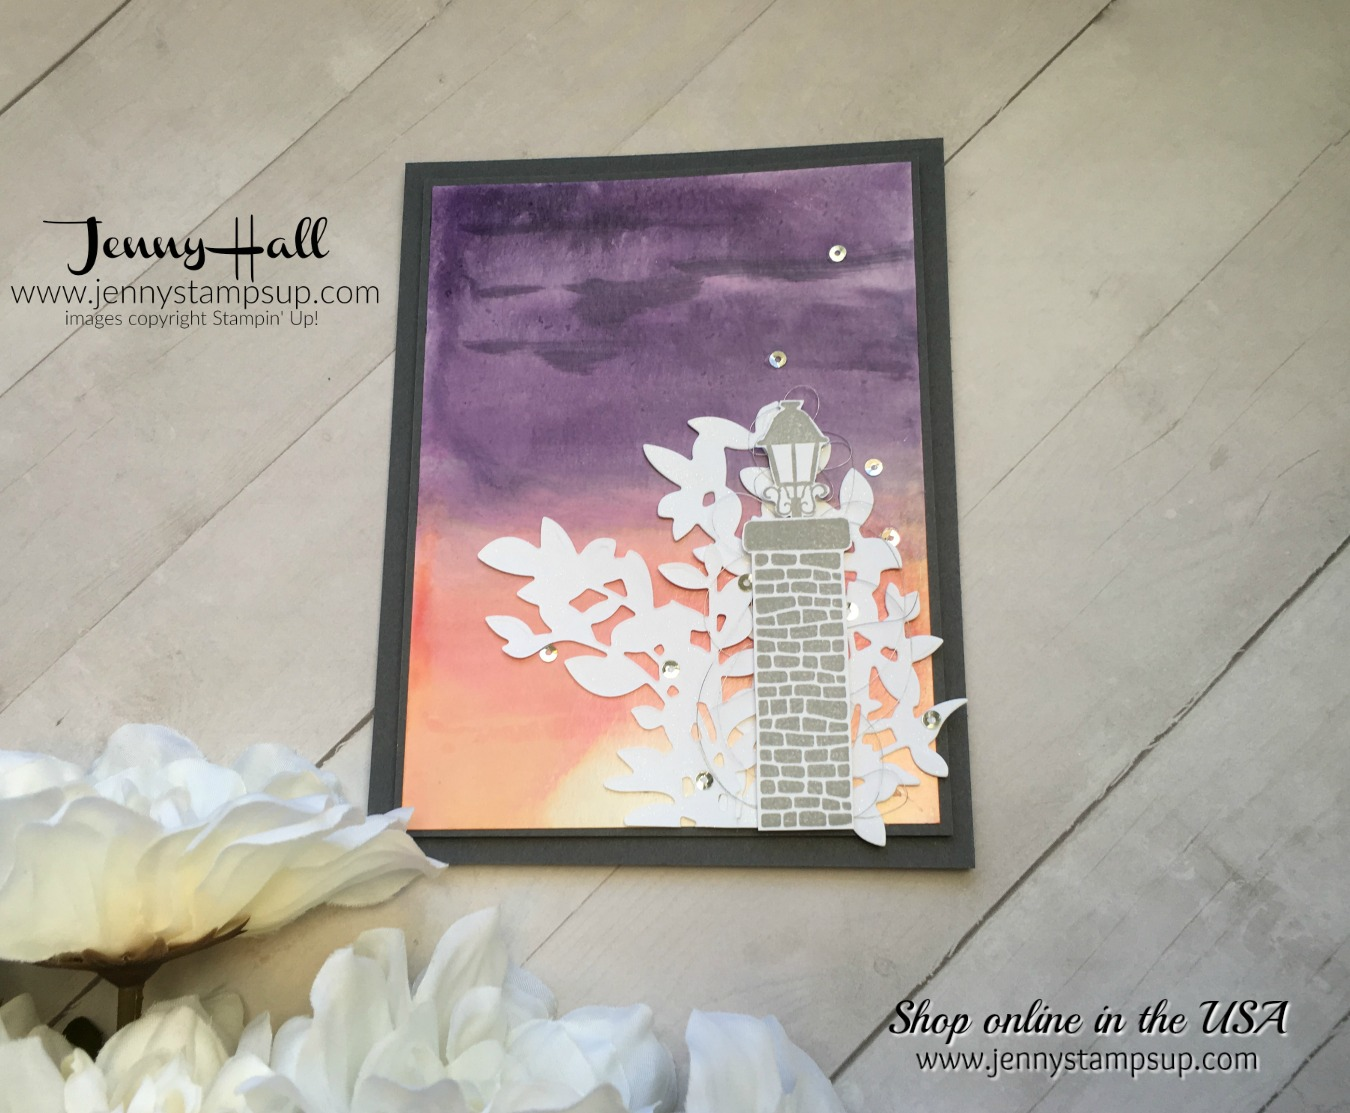 Graveyard Gate card by Jenny Hall at www.jennystampsup.com for cardmaking and more